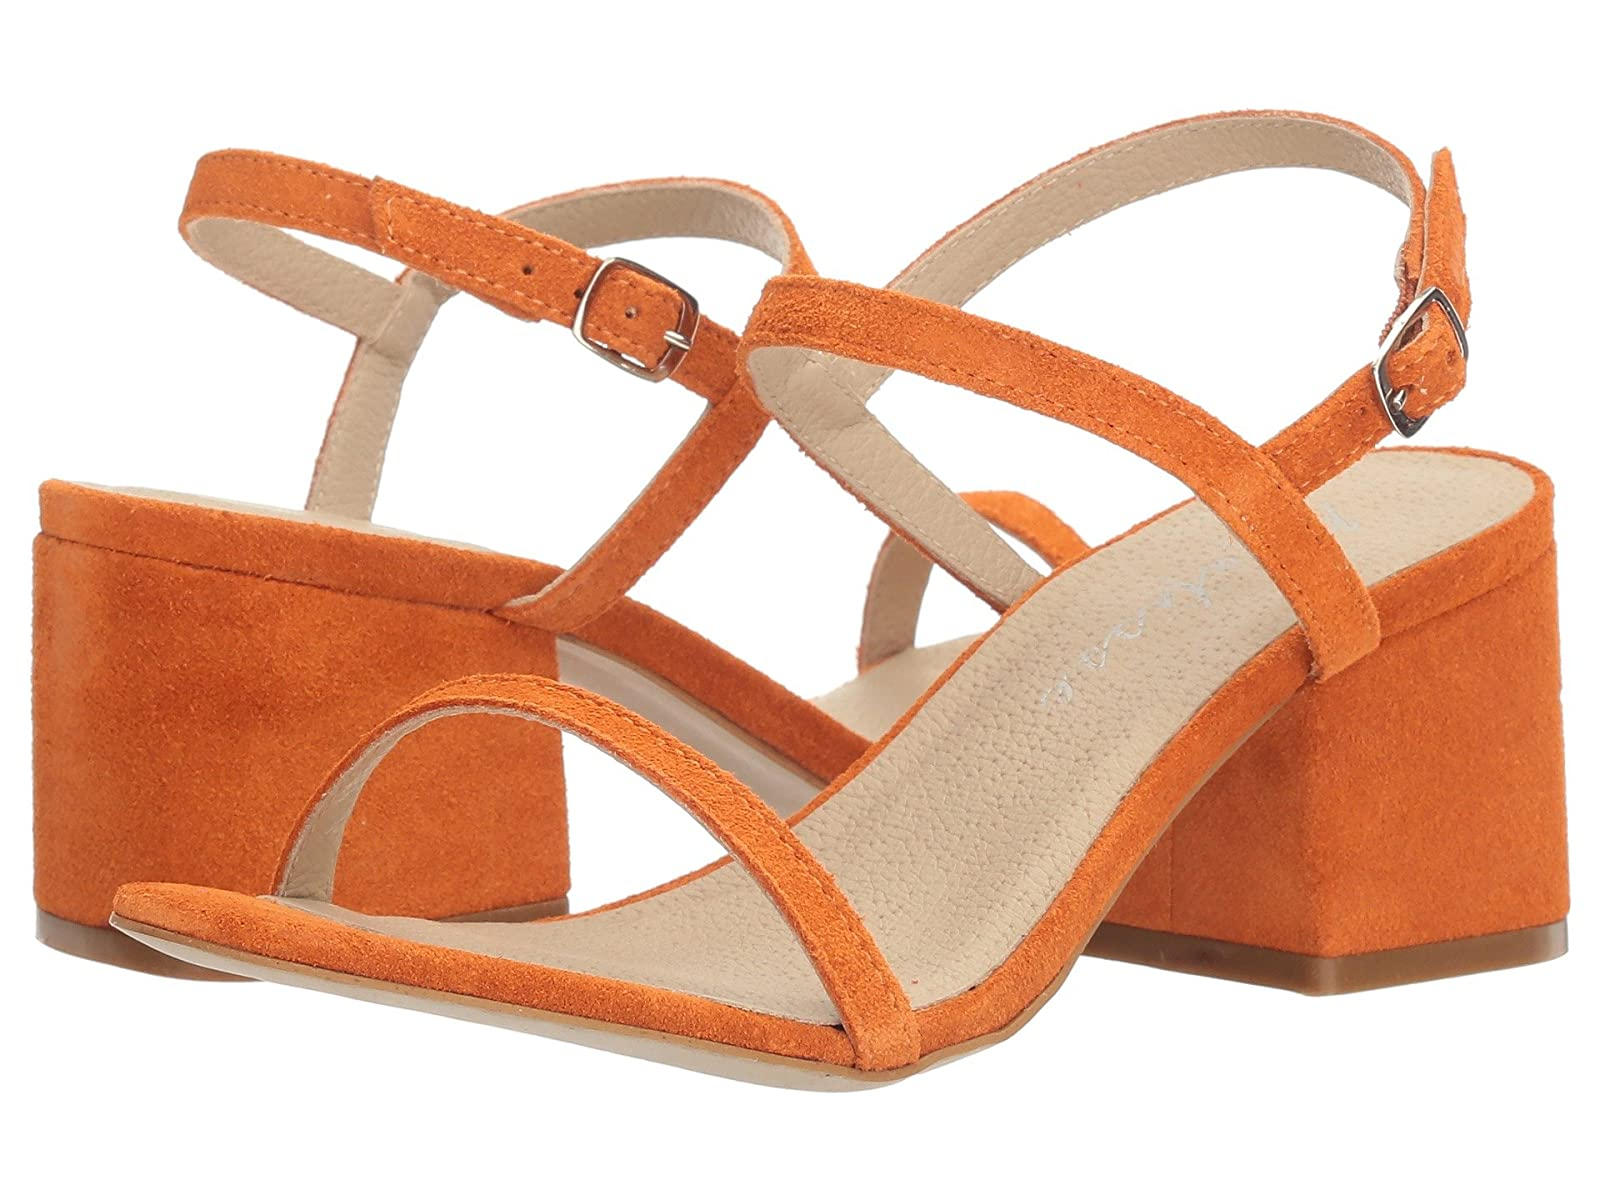 Matisse StellaCheap and distinctive eye-catching shoes